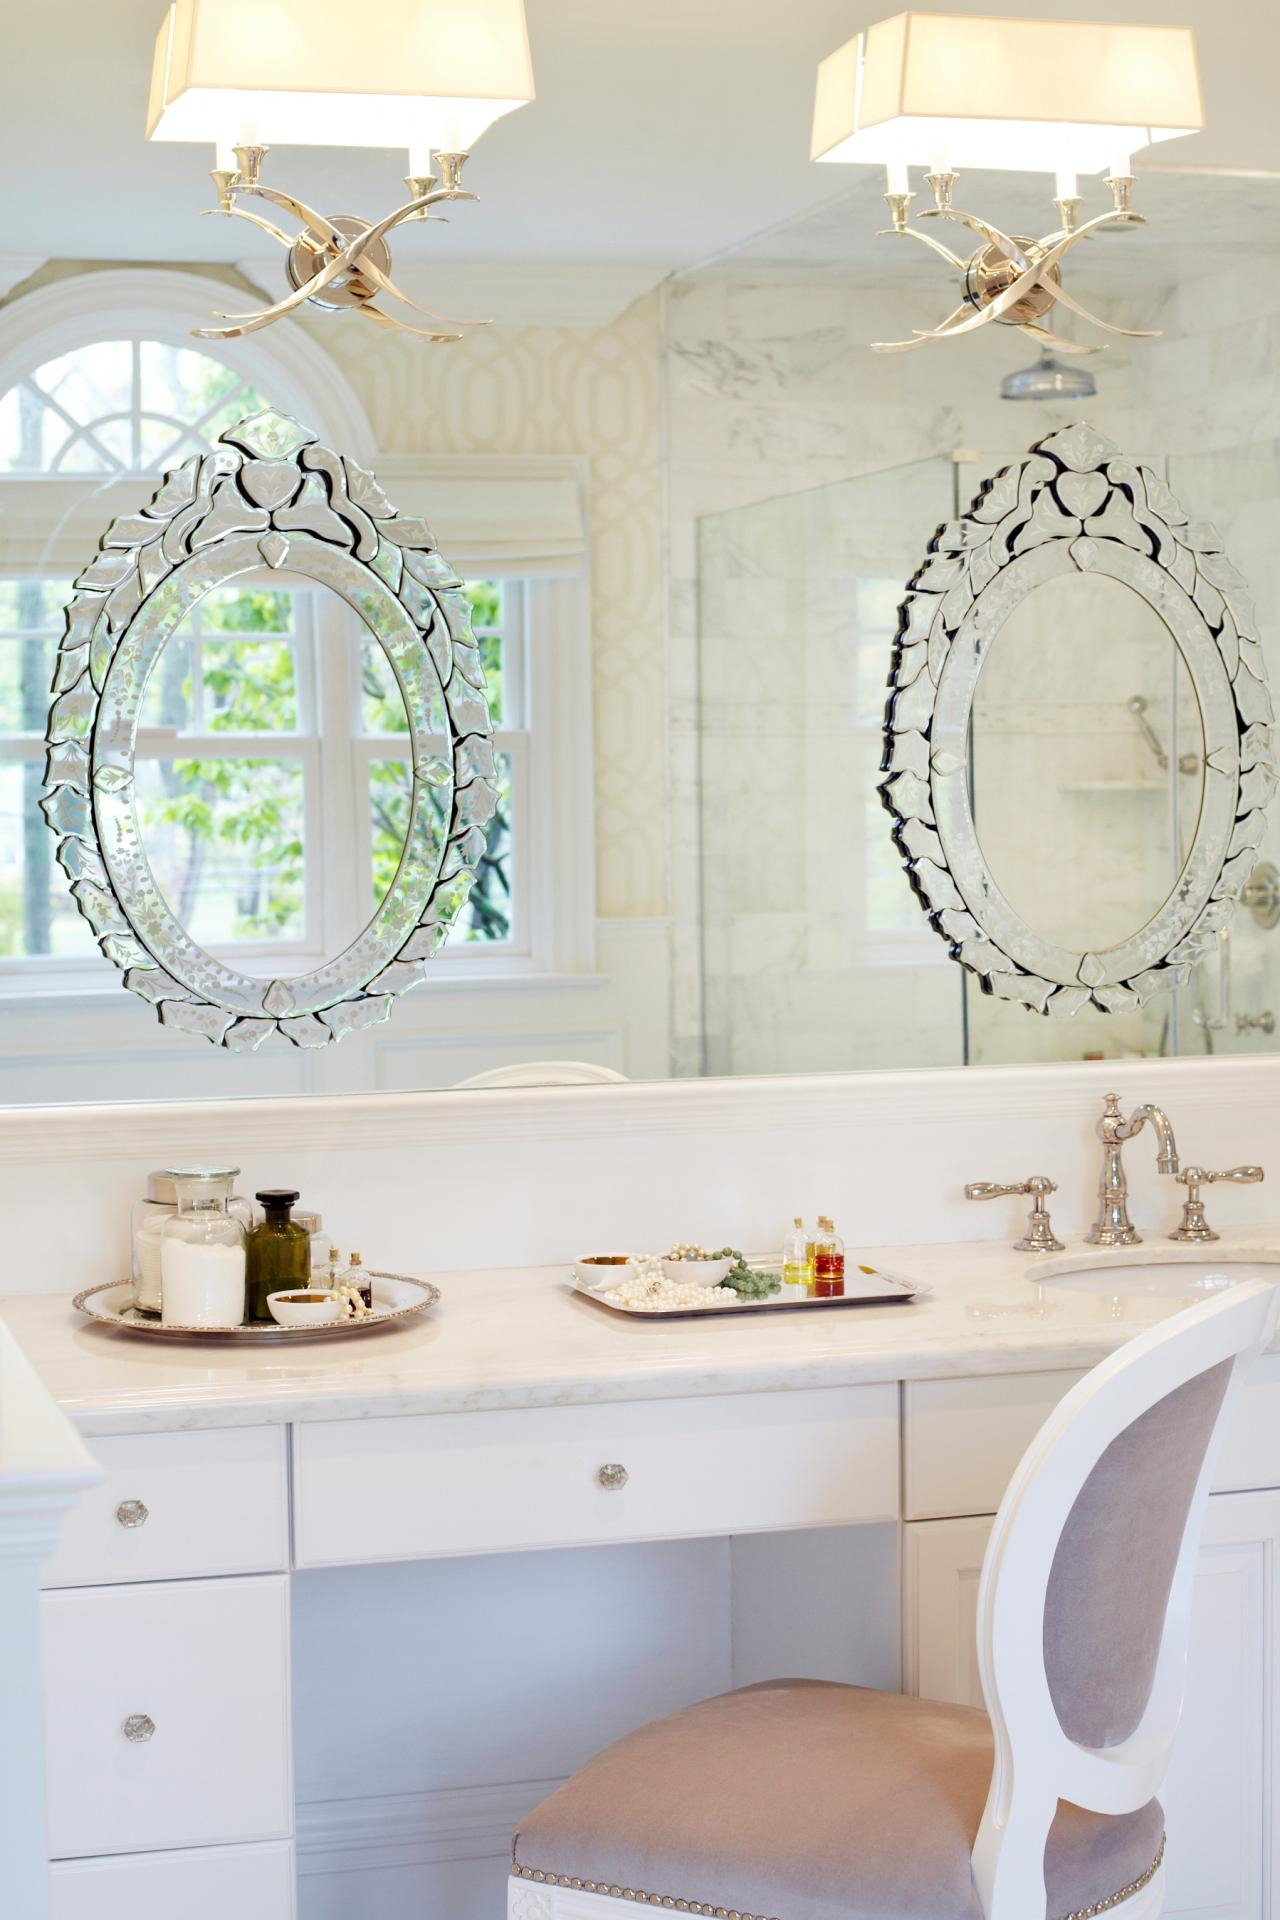 Mirrors For Sale Quick View Glenshire Wall Mirror Shab Chic Inside Venetian Style Mirrors Cheap (Image 12 of 15)